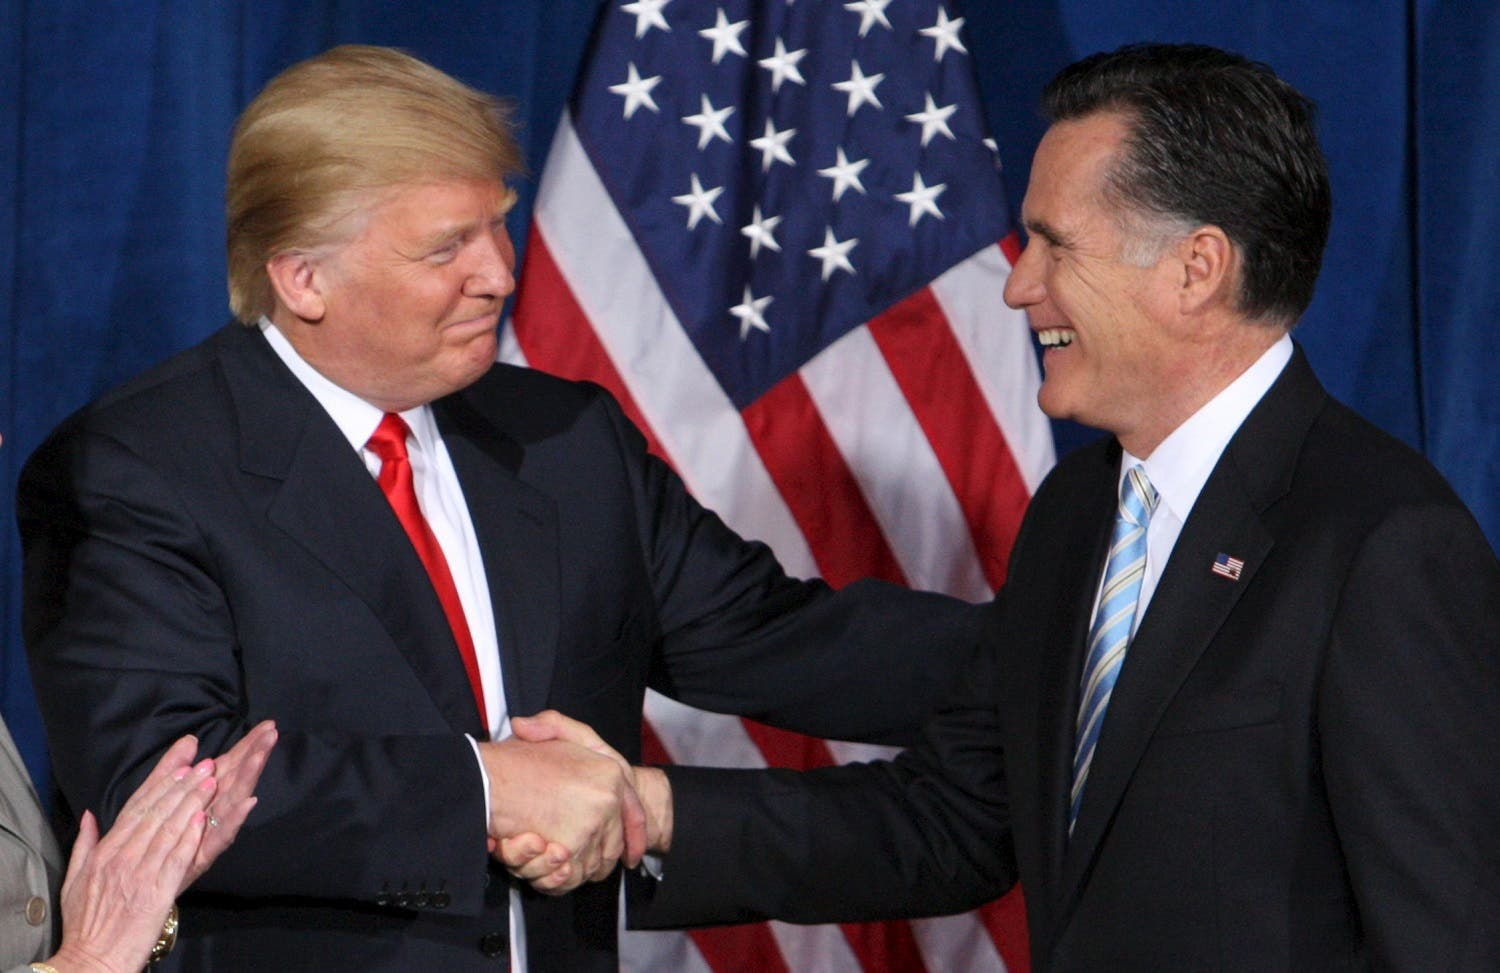 File photo of businessman and real estate developer Donald Trump greeting U.S. Republican presidential candidate and former Massachusetts Governor Romney after endorsing his candidacy for president at the Trump Hotel in Las Vegas. (Reuters)